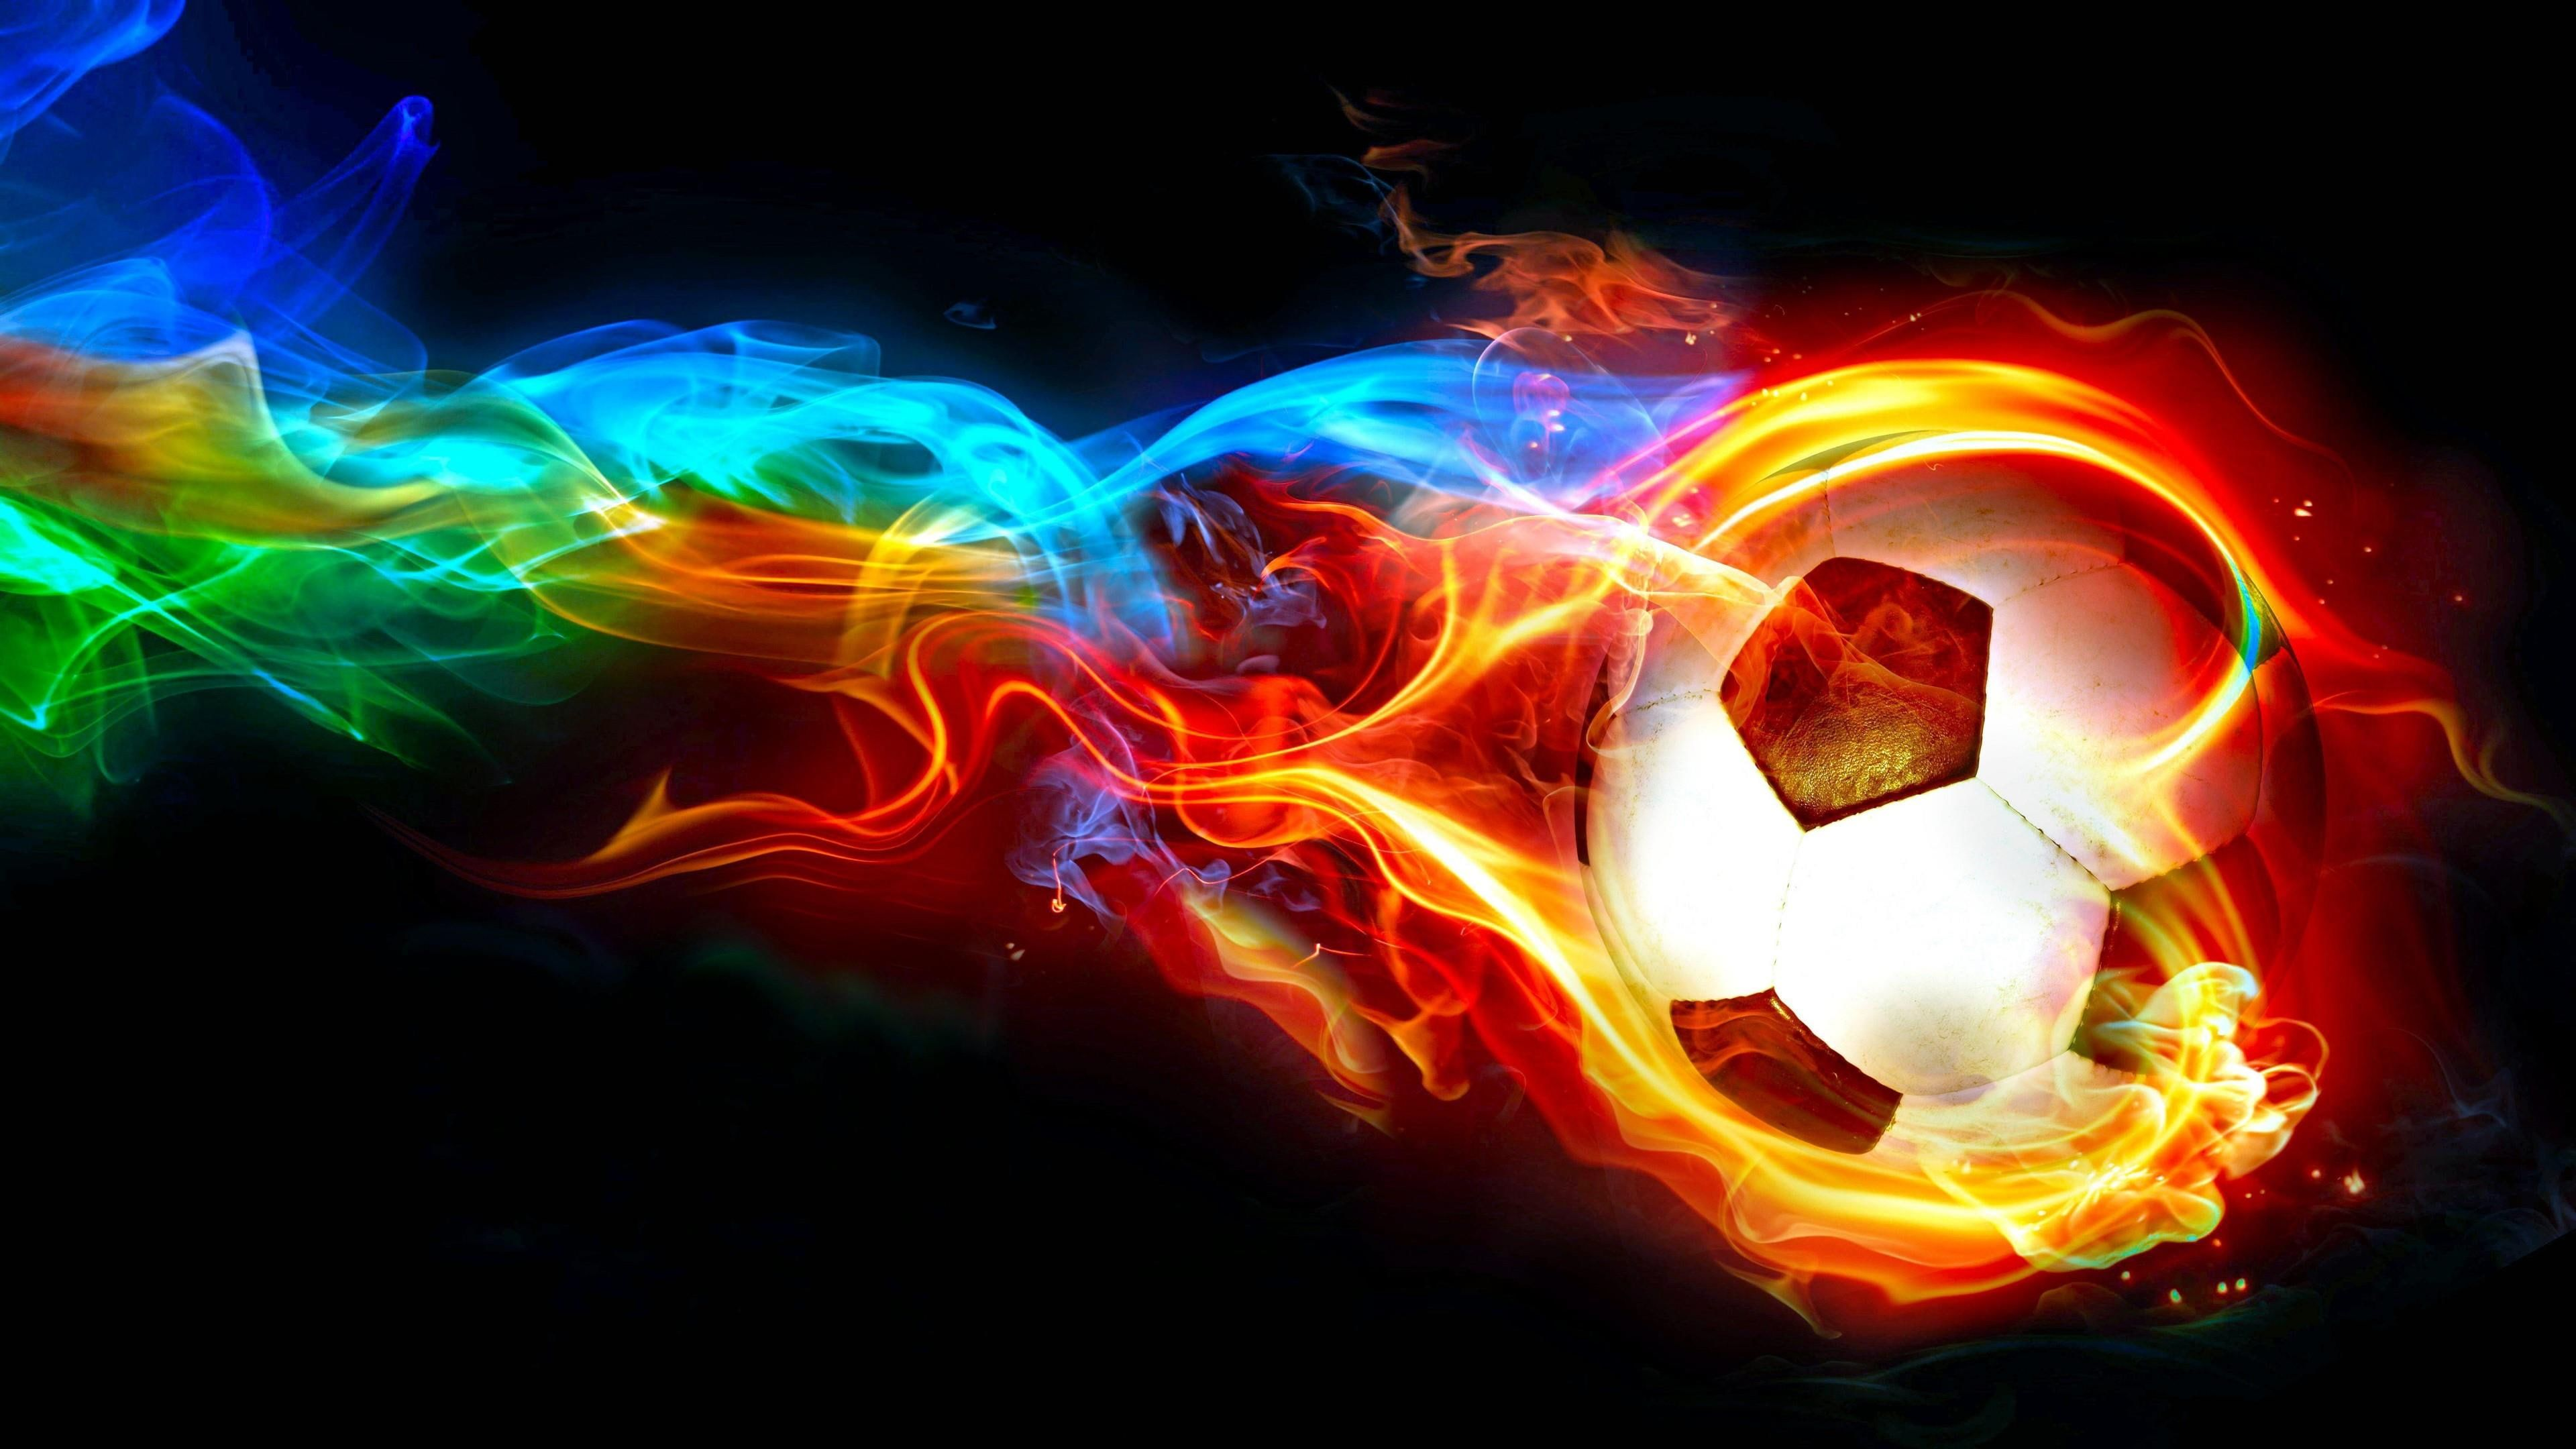 Soccer Ball Flame Football Ball Fire Graphics Darkness Colorful Multicolor Cool Digital Art Design S Football Wallpaper Soccer Ball Sports Wallpapers